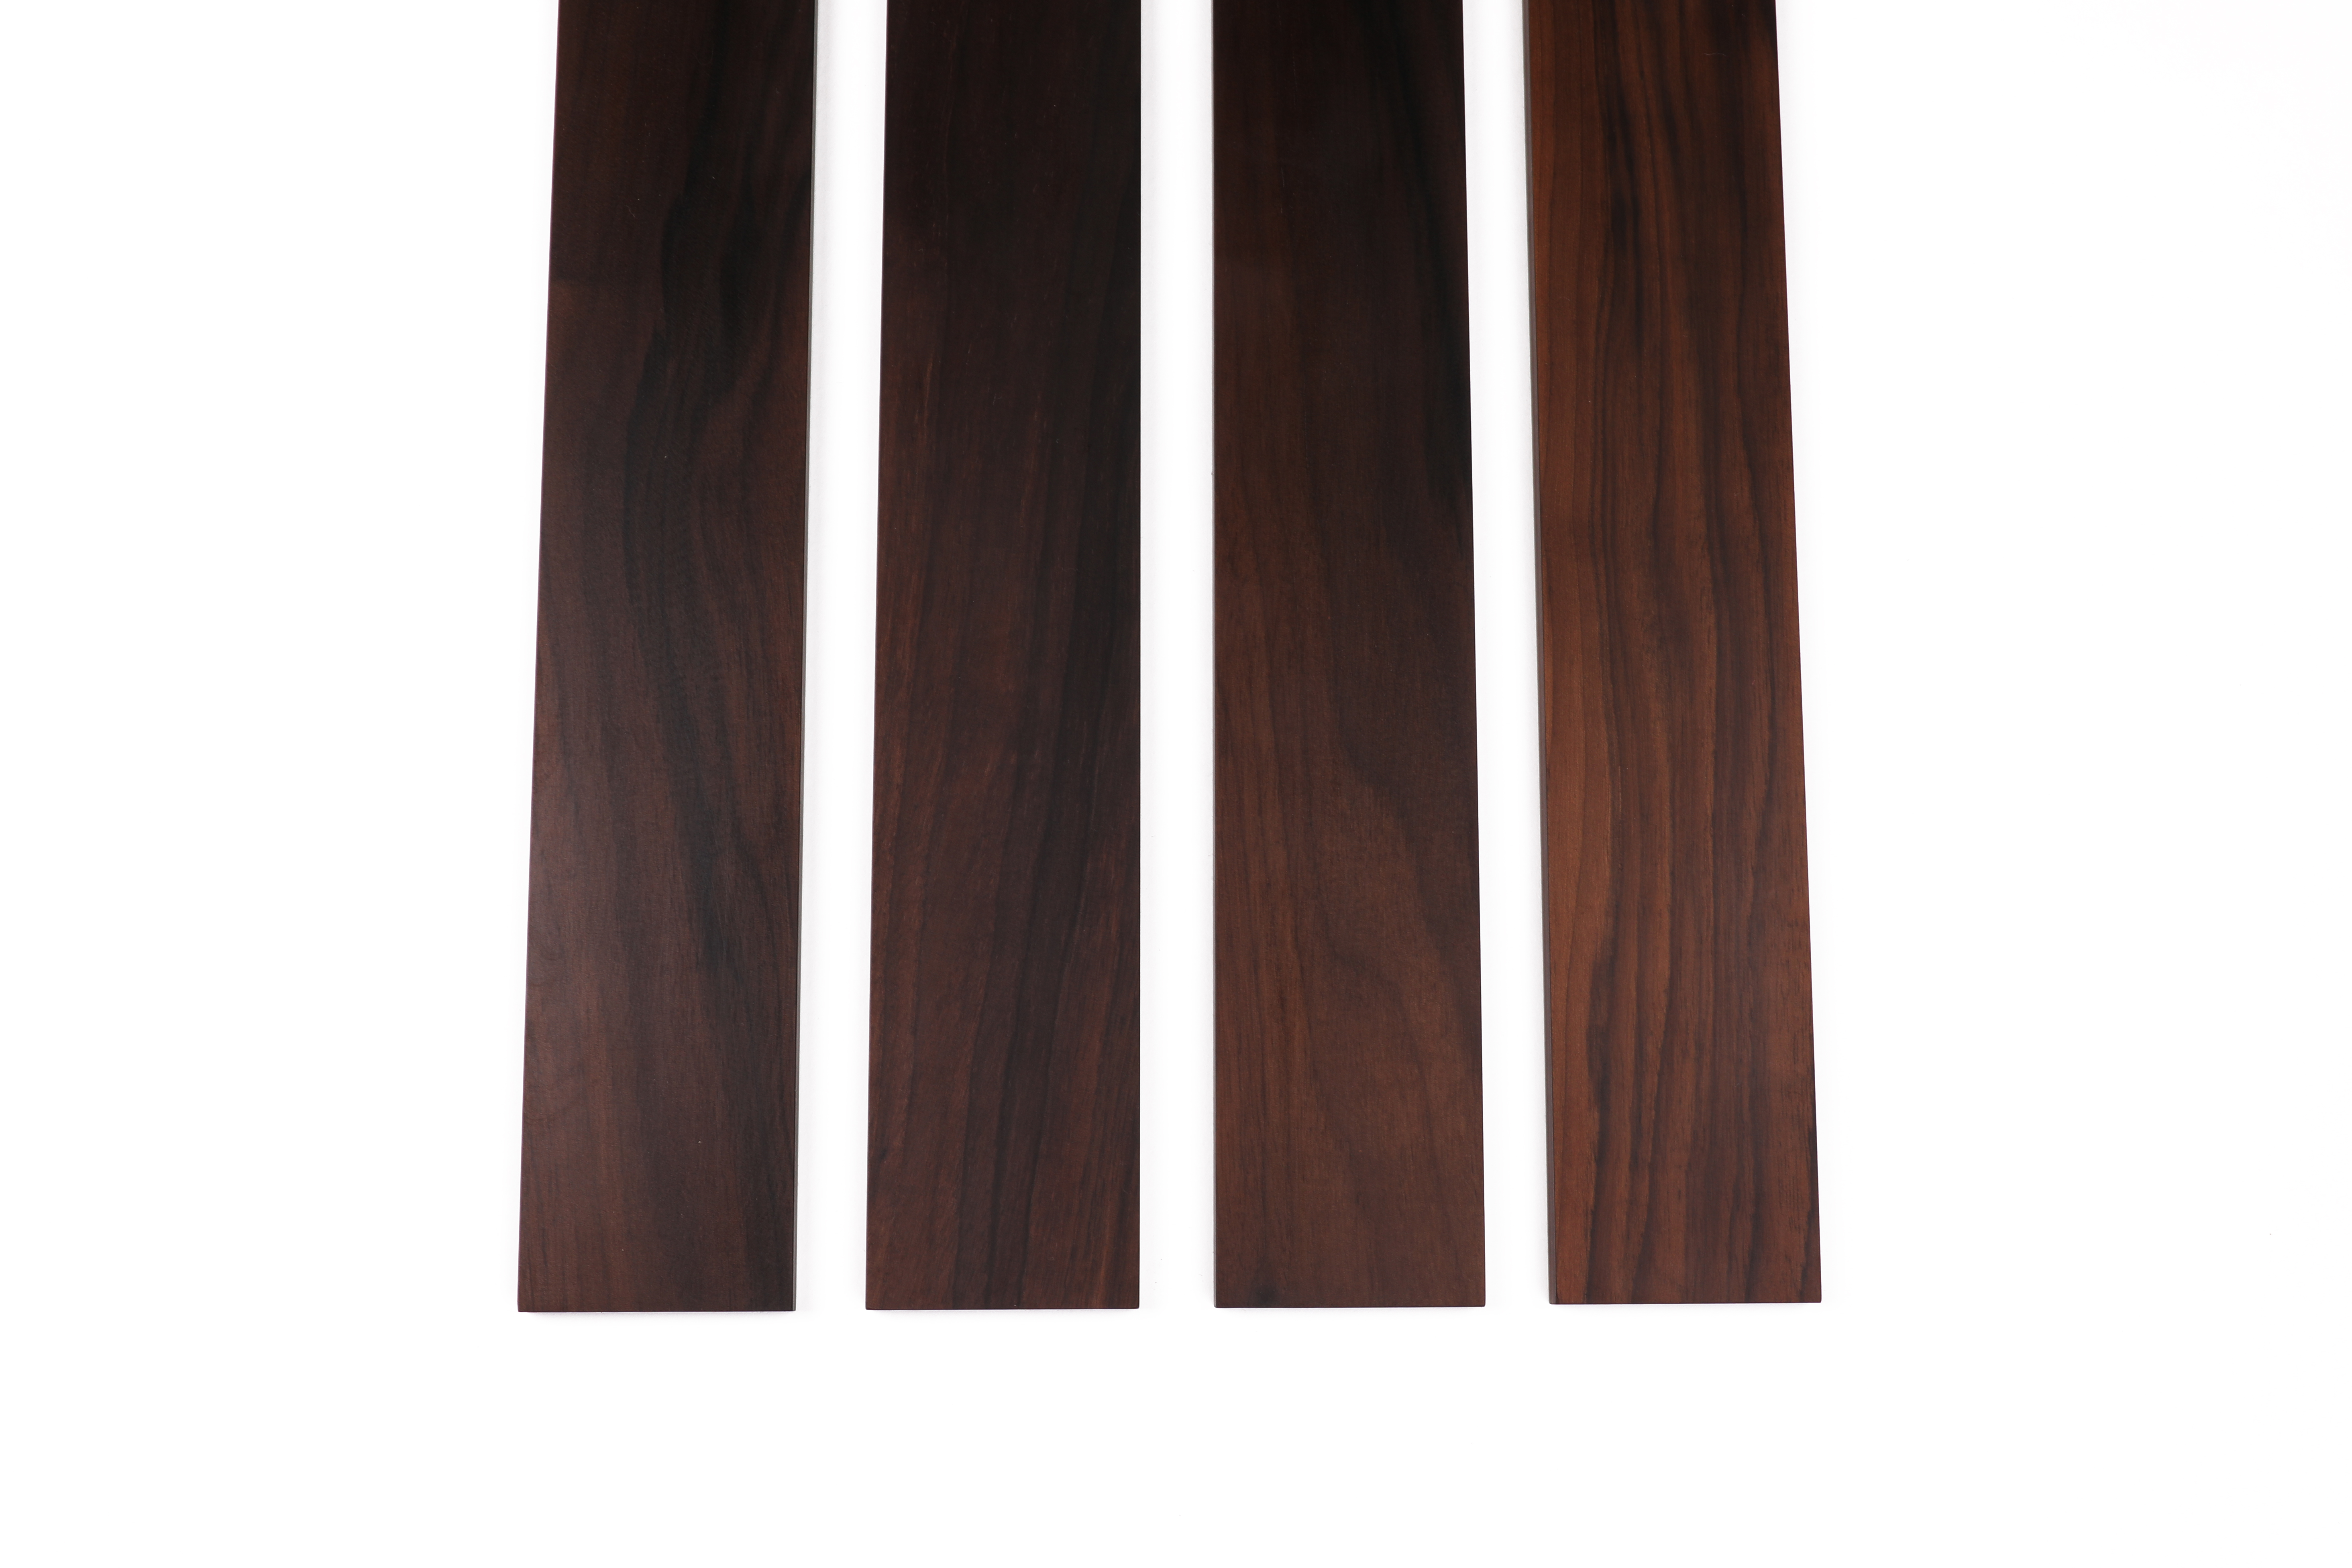 Fretboards from Sonowood walnut